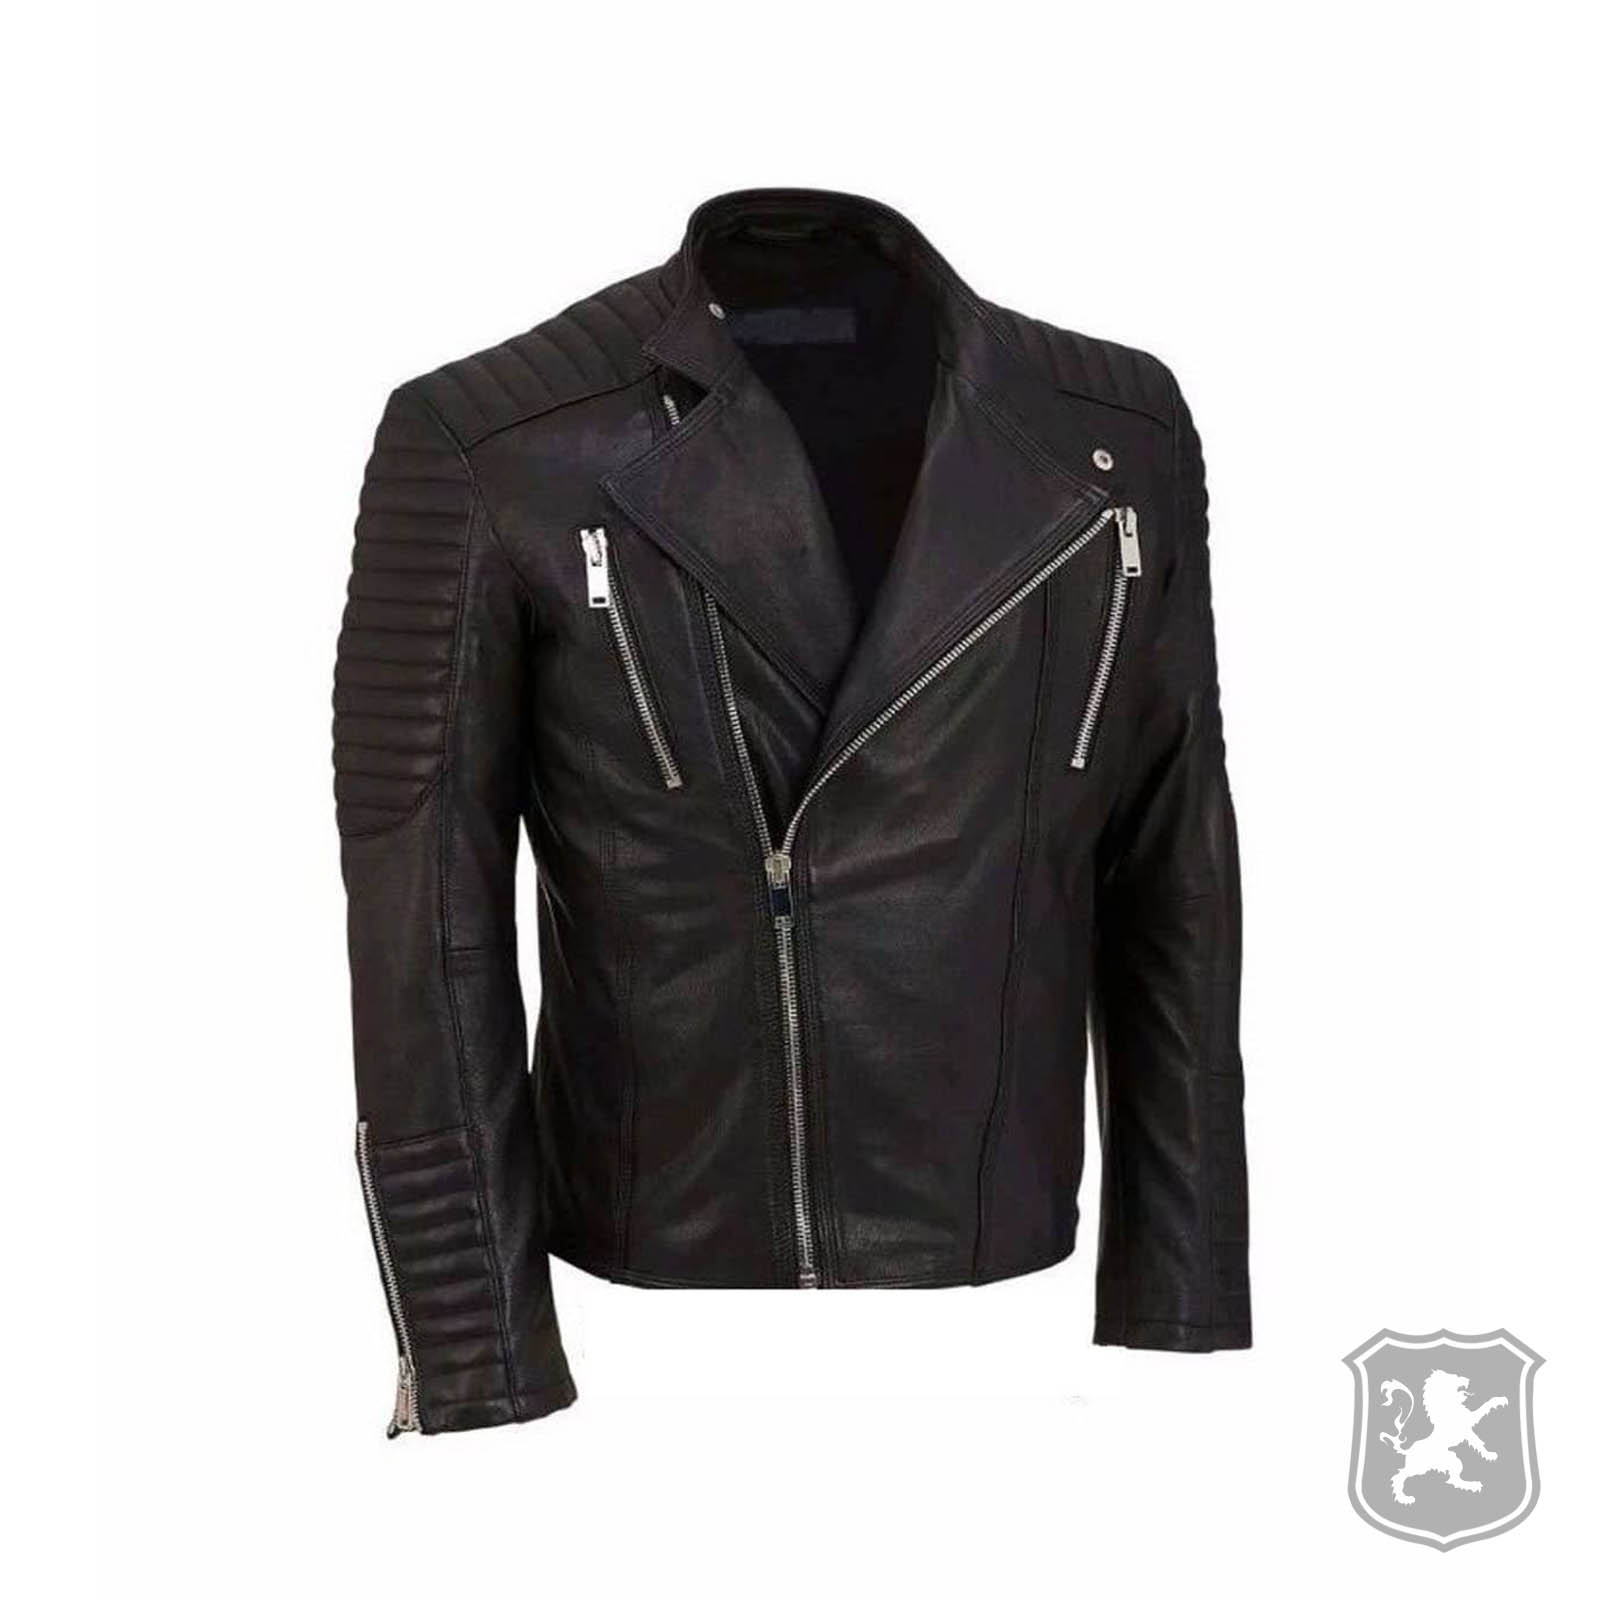 77dac0afc Classical Vintage Leather Jacket